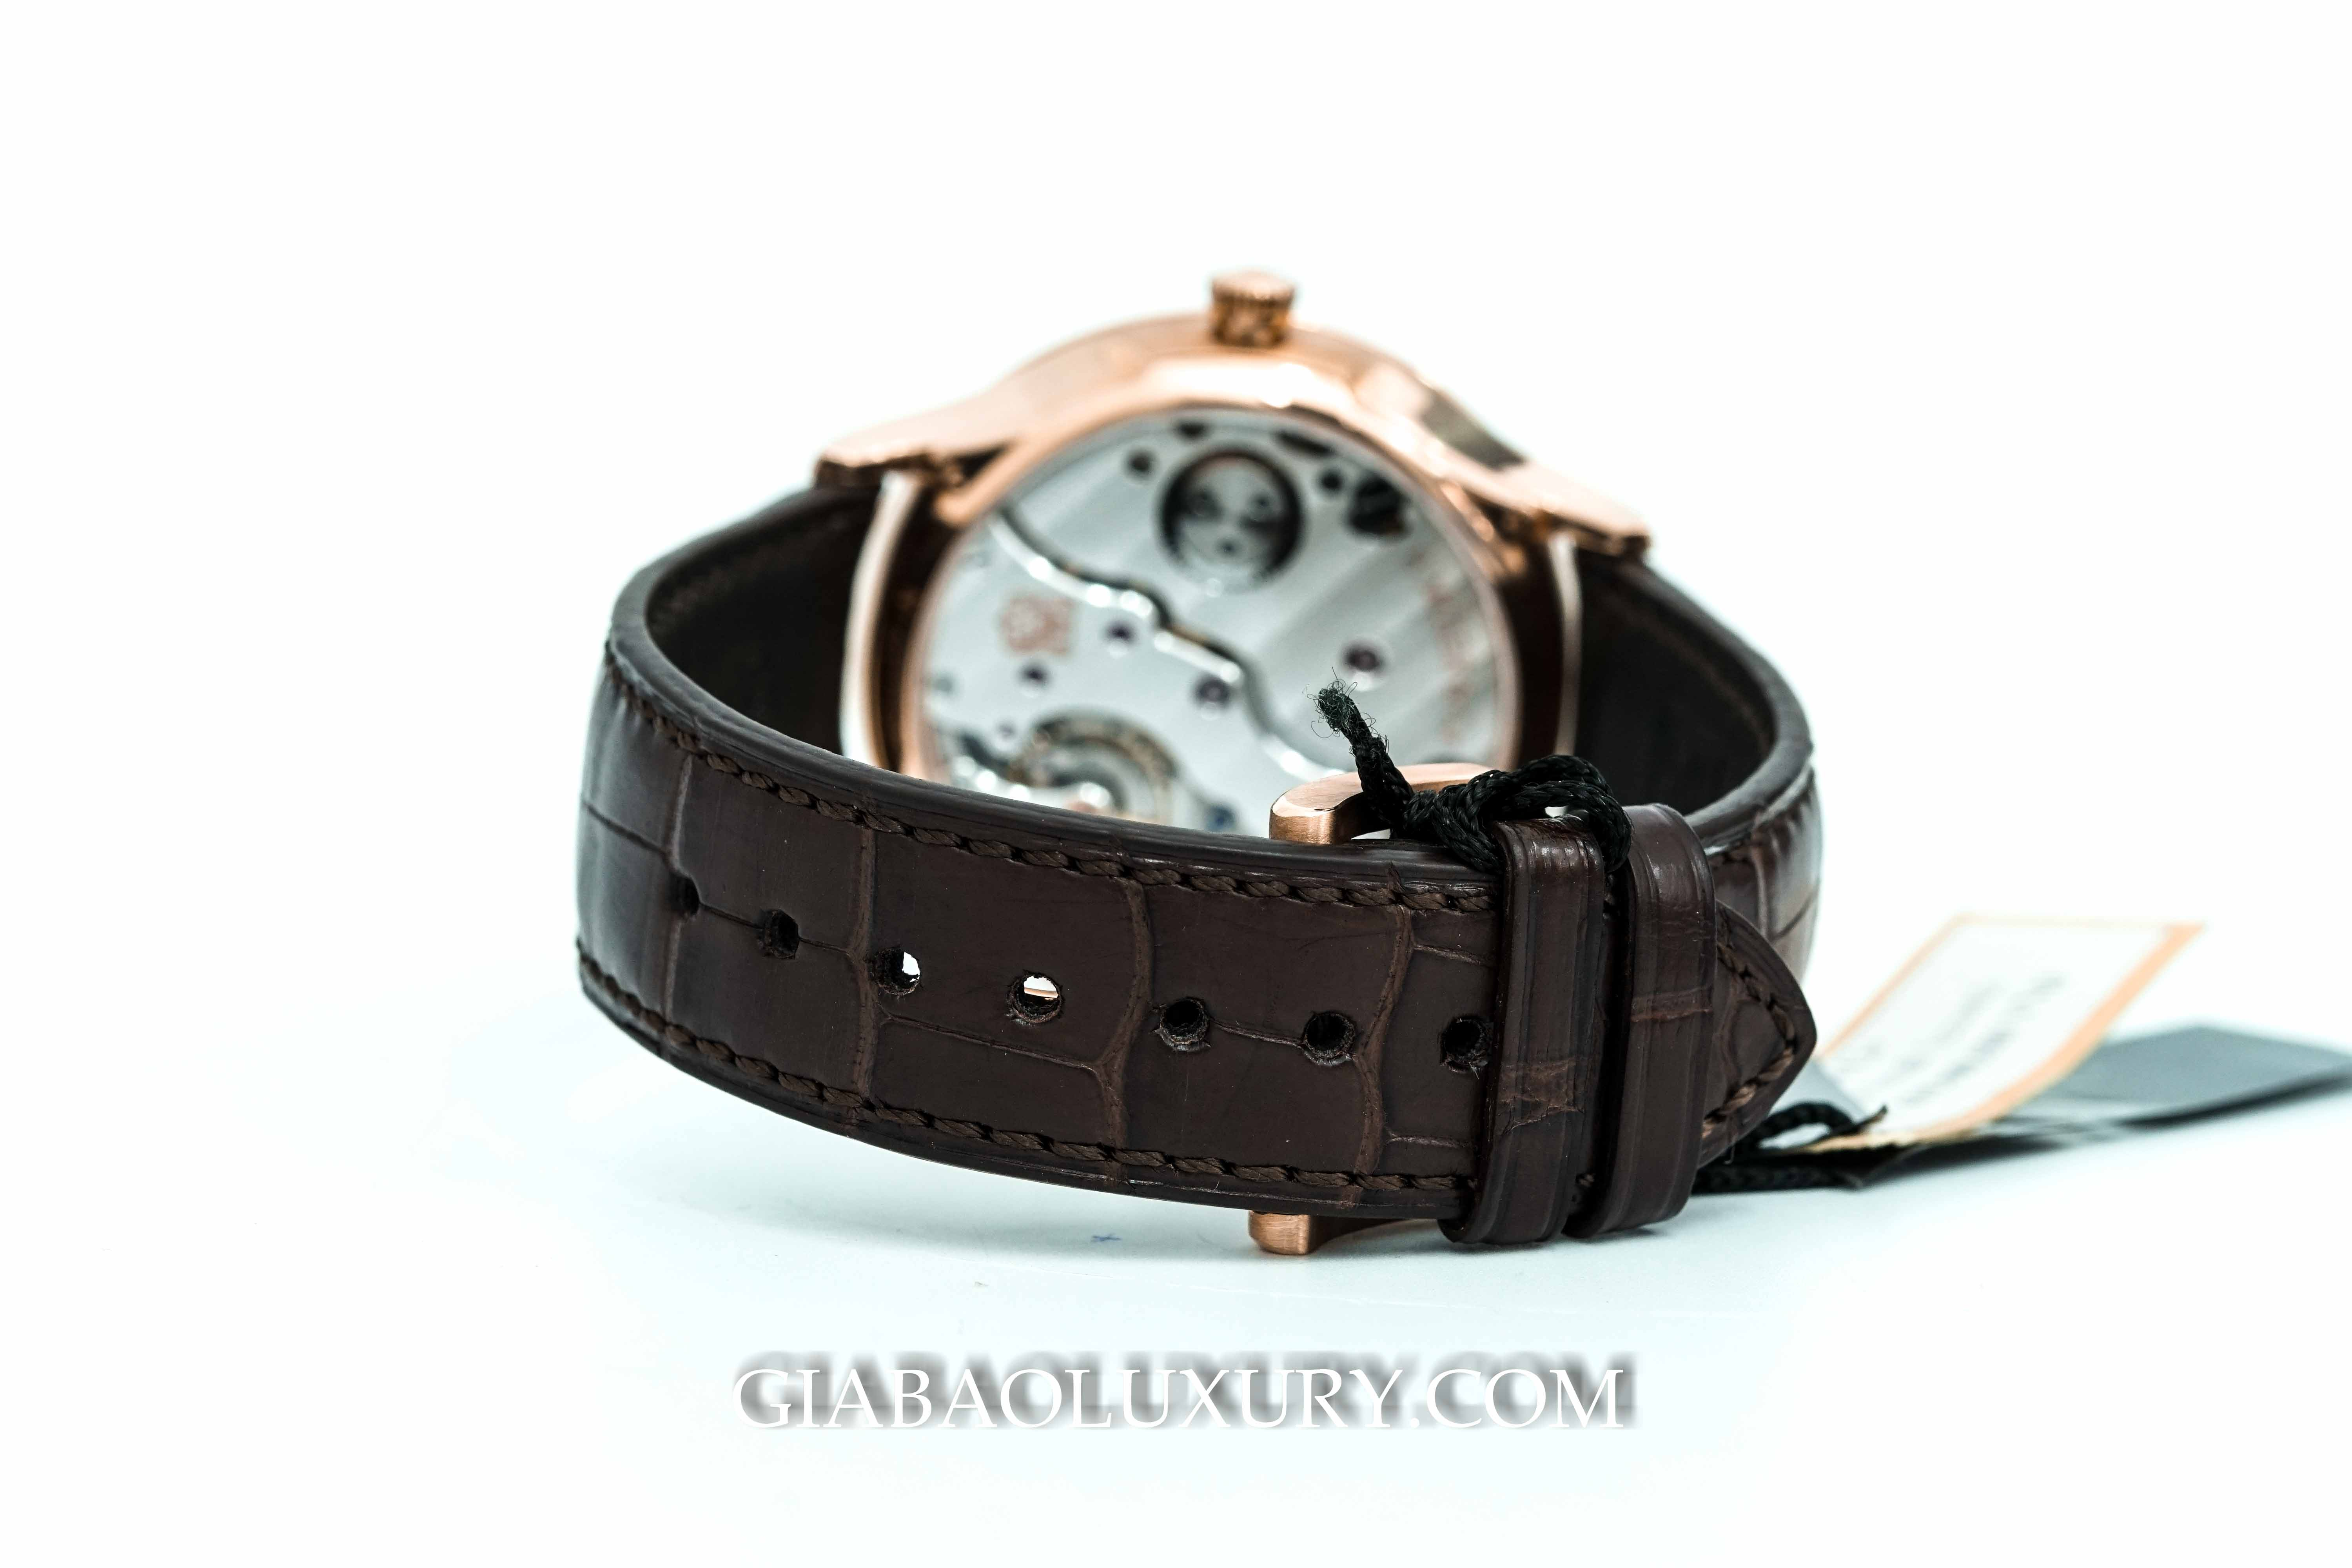 Đồng Hồ H.Moser Venturer Small Seconds Red Gold Fumé Dial 2327-0401